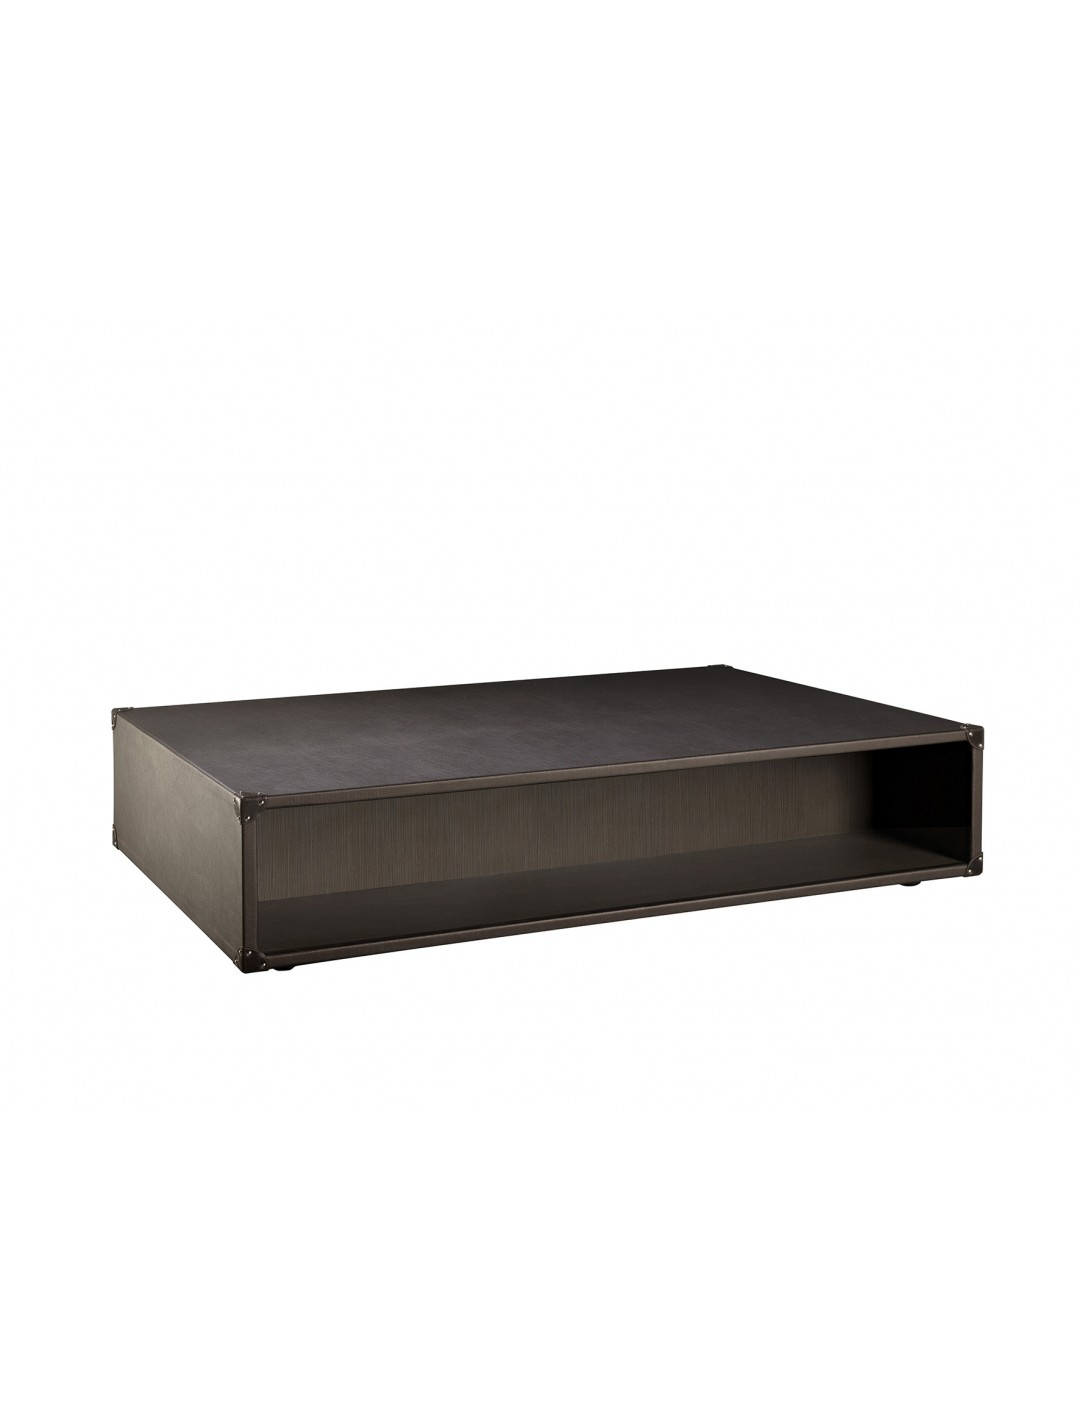 COMPASS T3 COFFEE TABLE, FINISH: ECO LEATHER, 180*120*40H